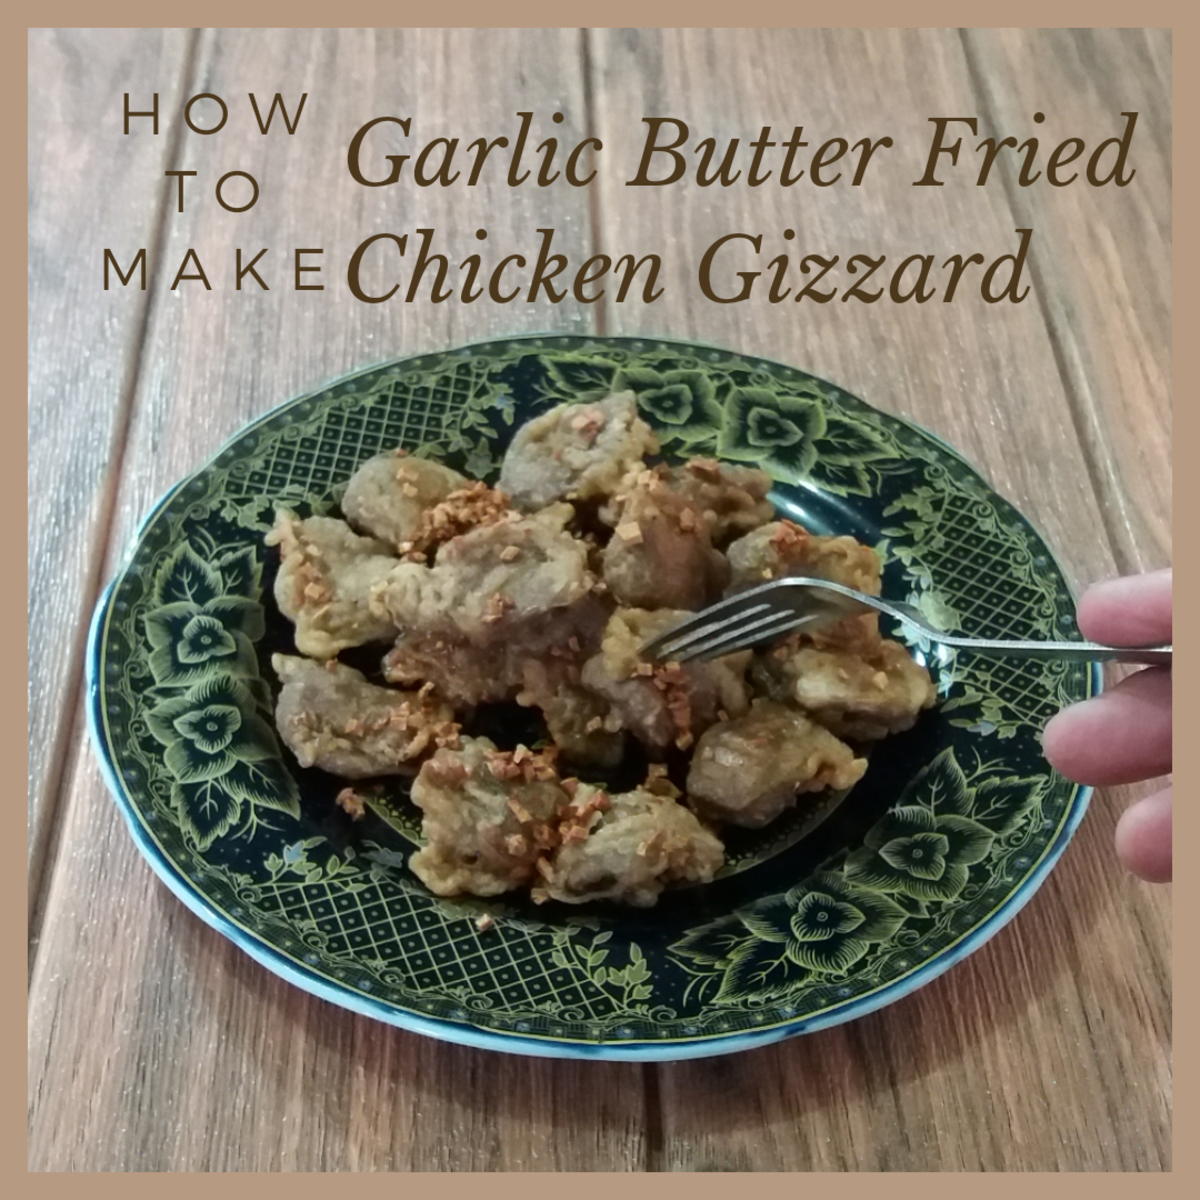 hot to make fried chicken gizzards with garlic butter